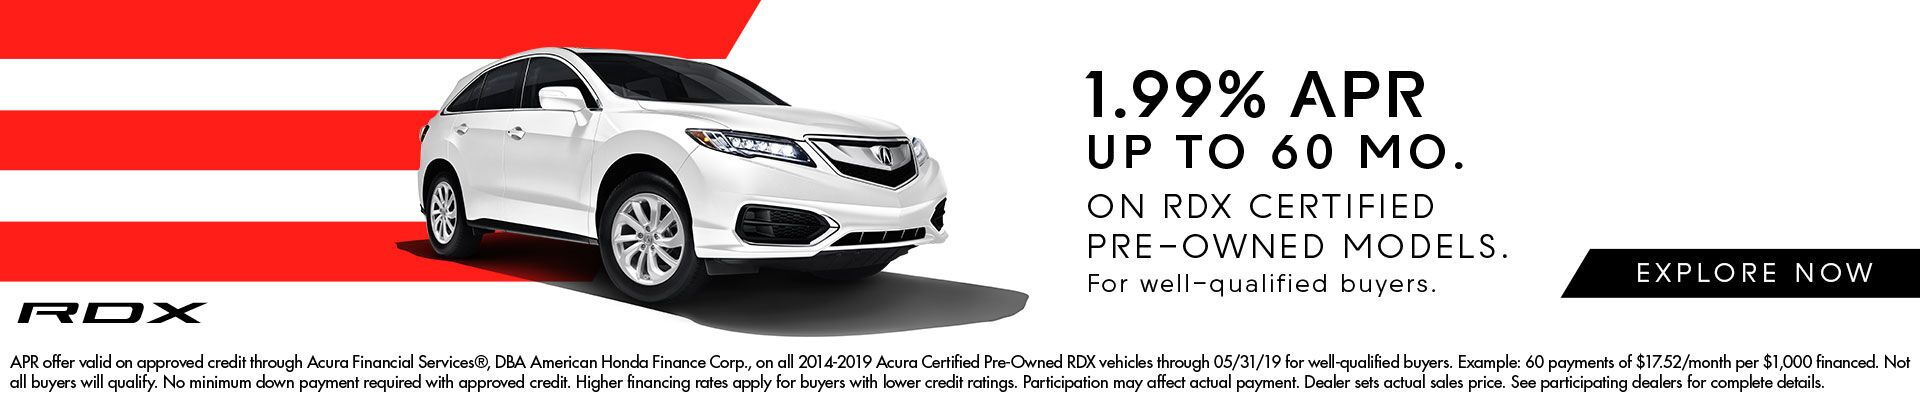 1.99% APR Incentives on Certified RDX at CardinaleWay Acura